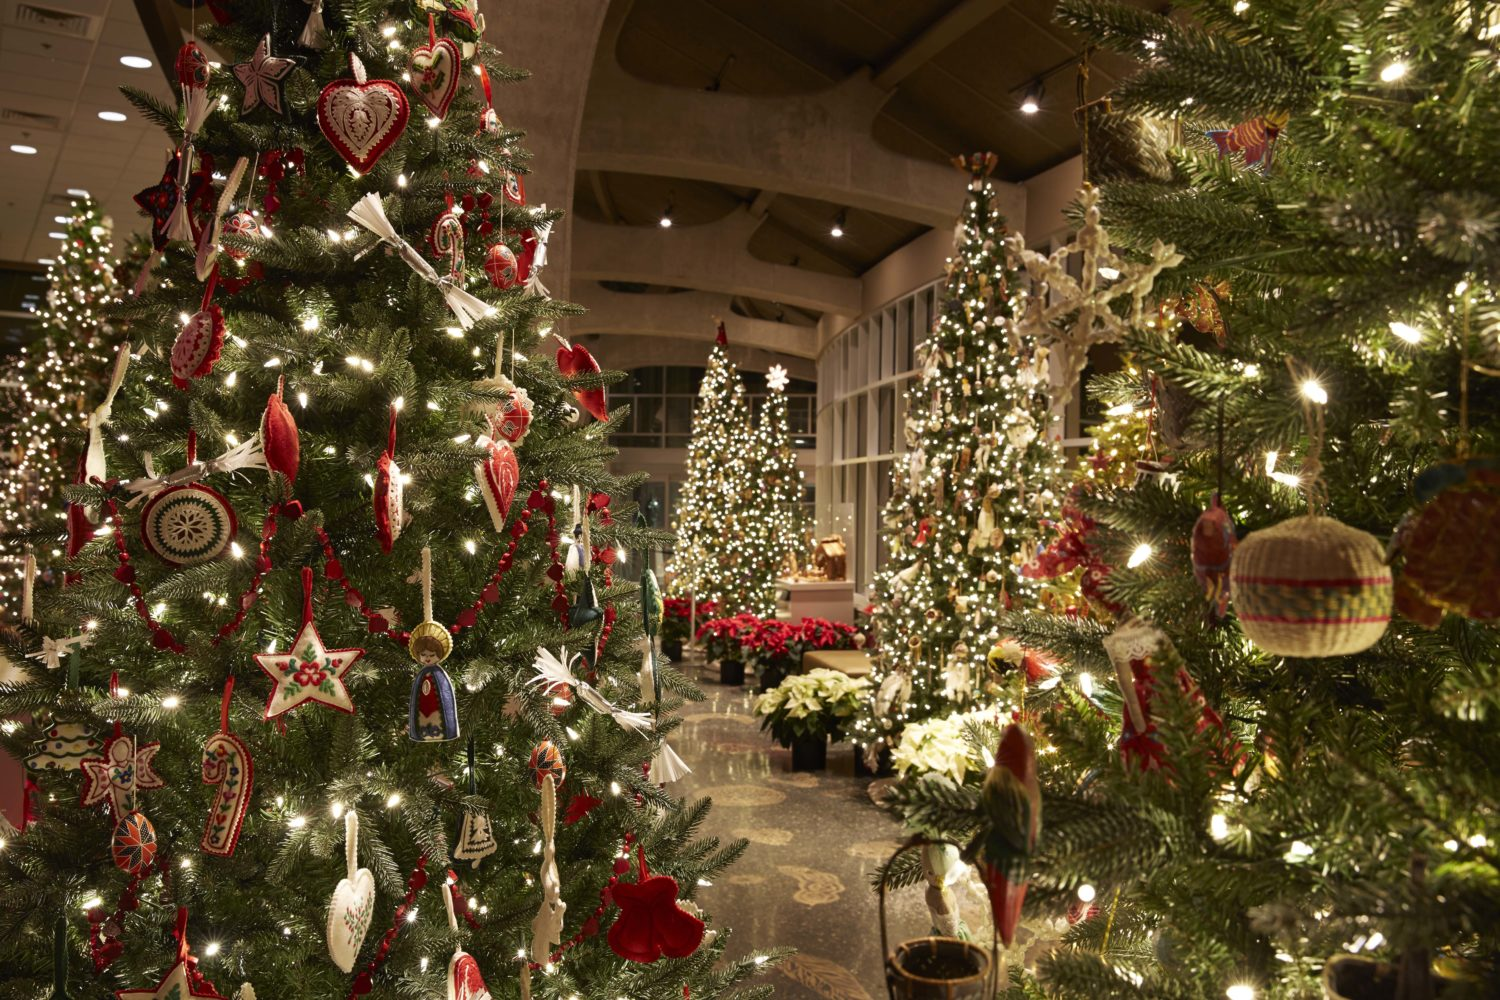 Meijer Gardens Celebrates The Holidays With More Than 40